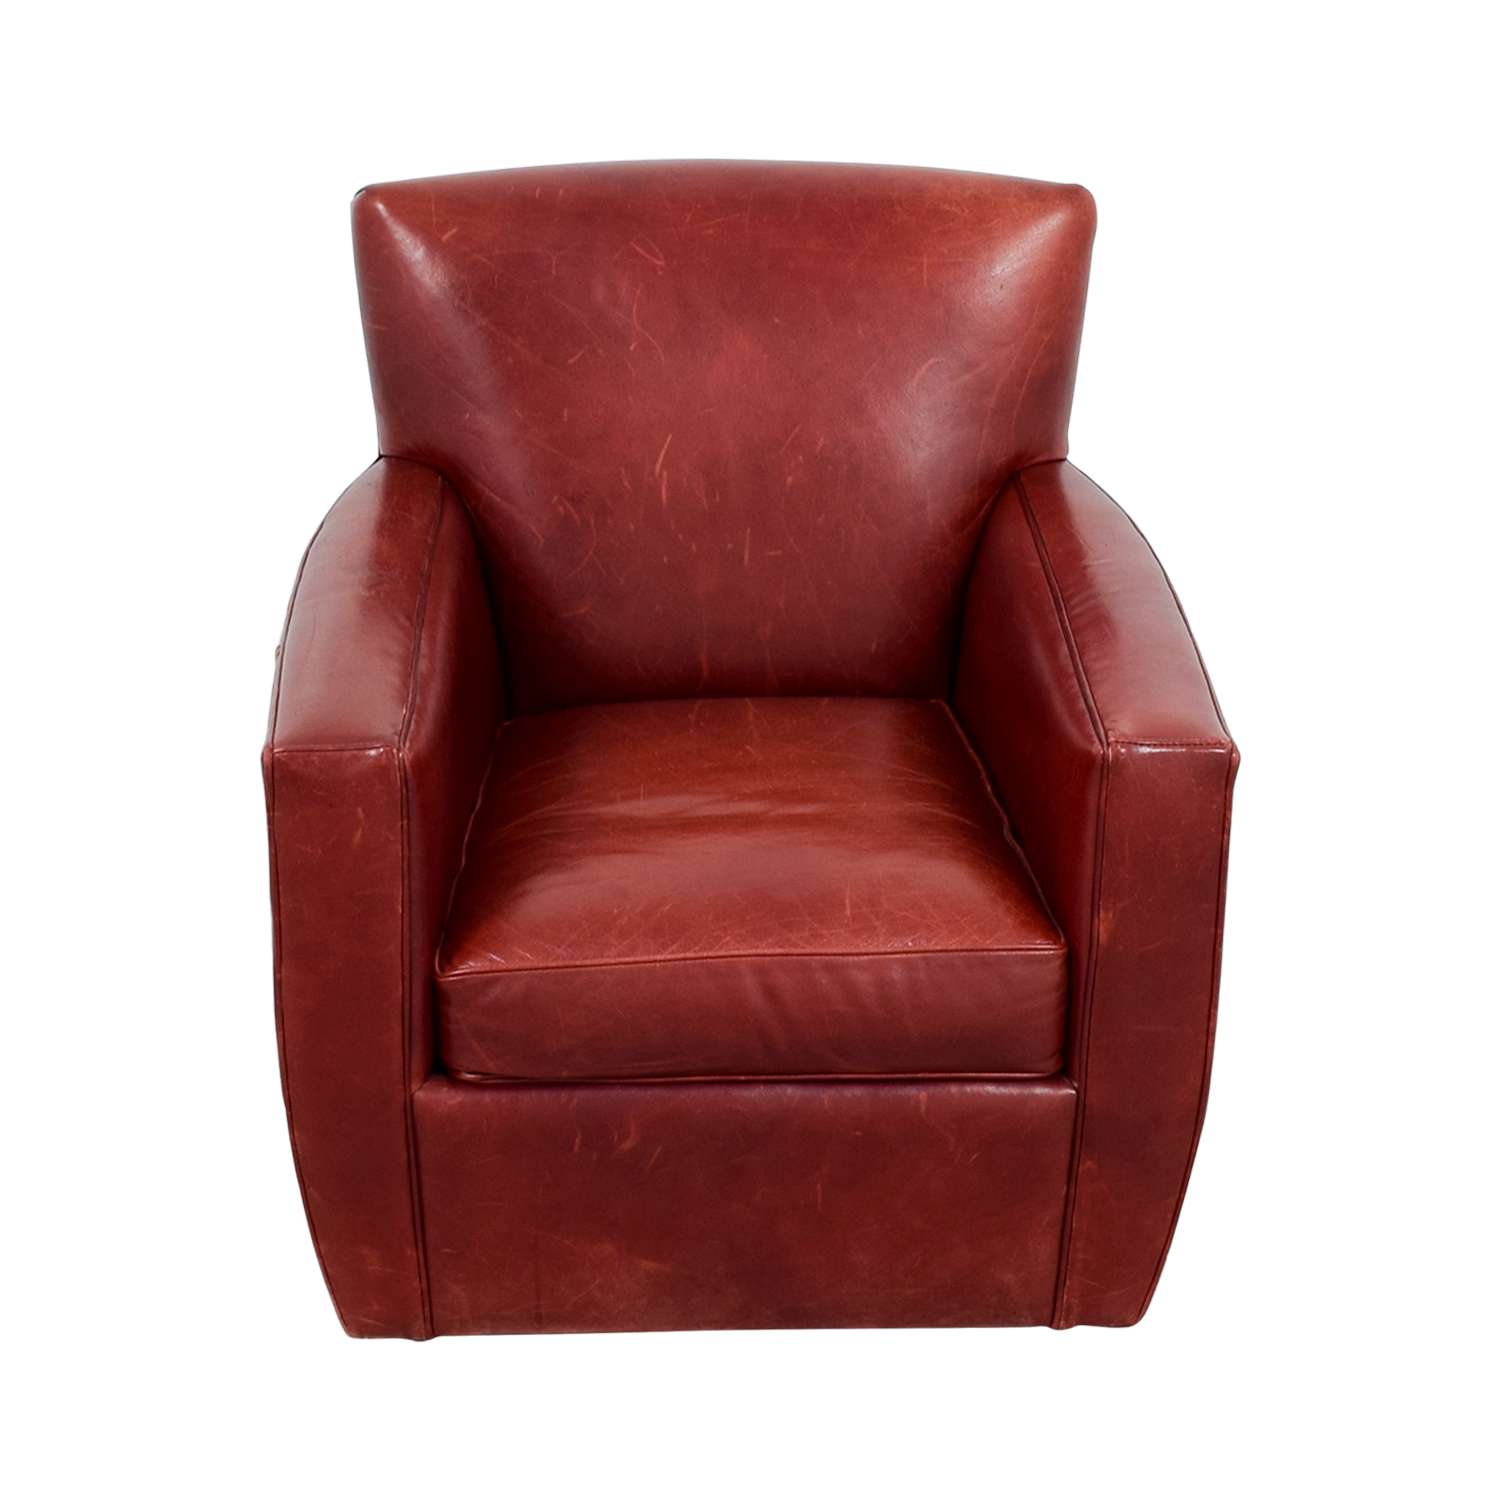 Crate & Barrel Crate & Barrel Leather Swivel Chair dimensions